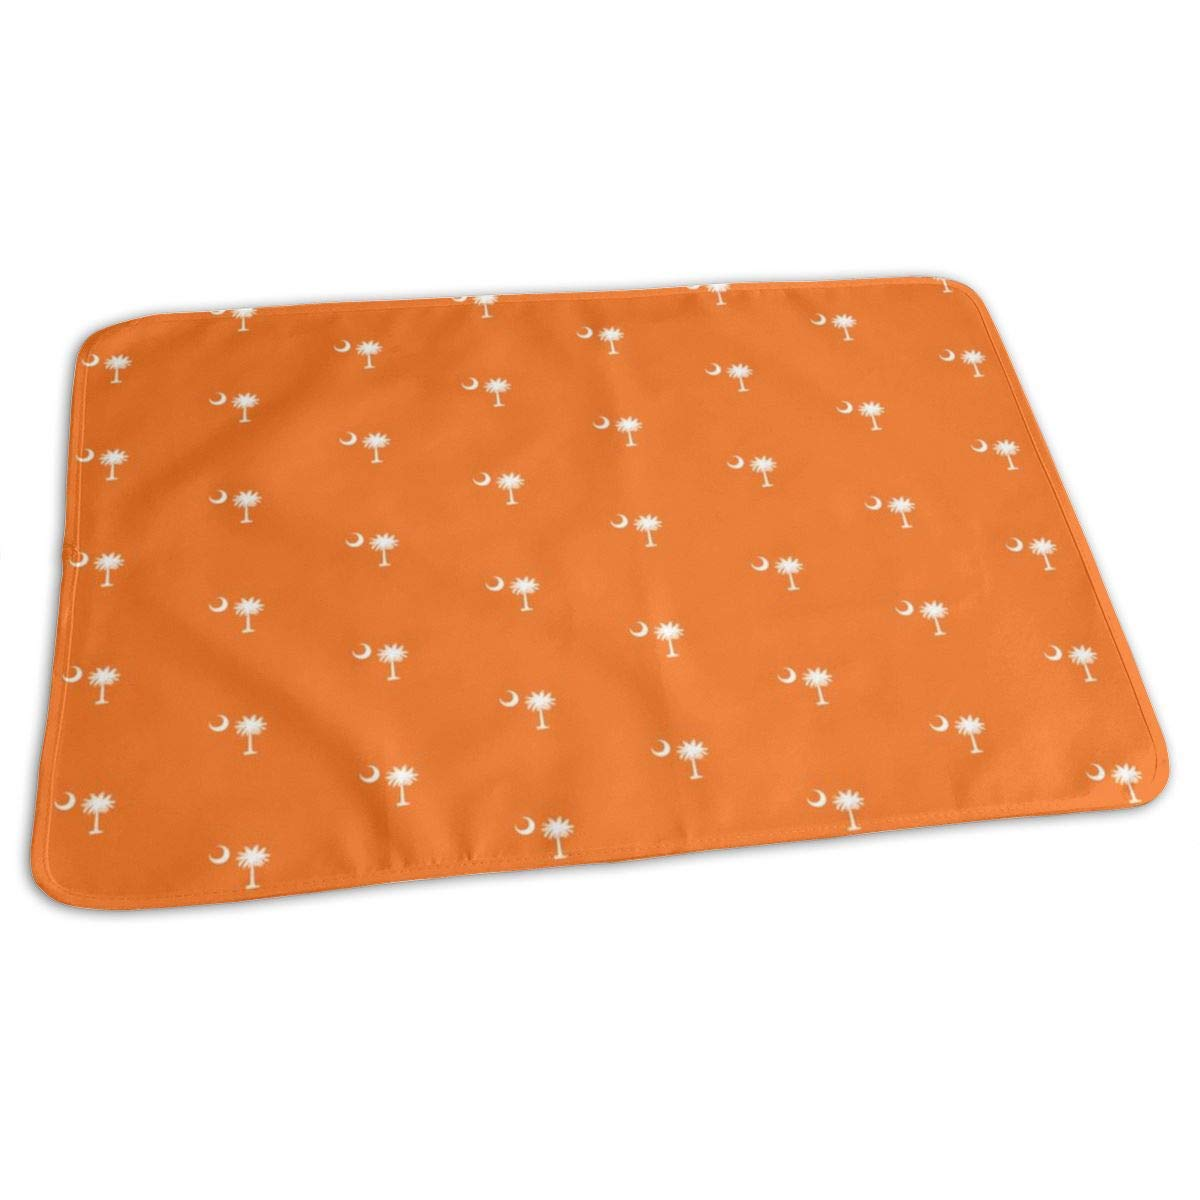 SC Flag Palmetto Moon ORANGE SOUTH CAROLINA Baby Portable Reusable Changing Pad Mat 19.7x27.5 inch